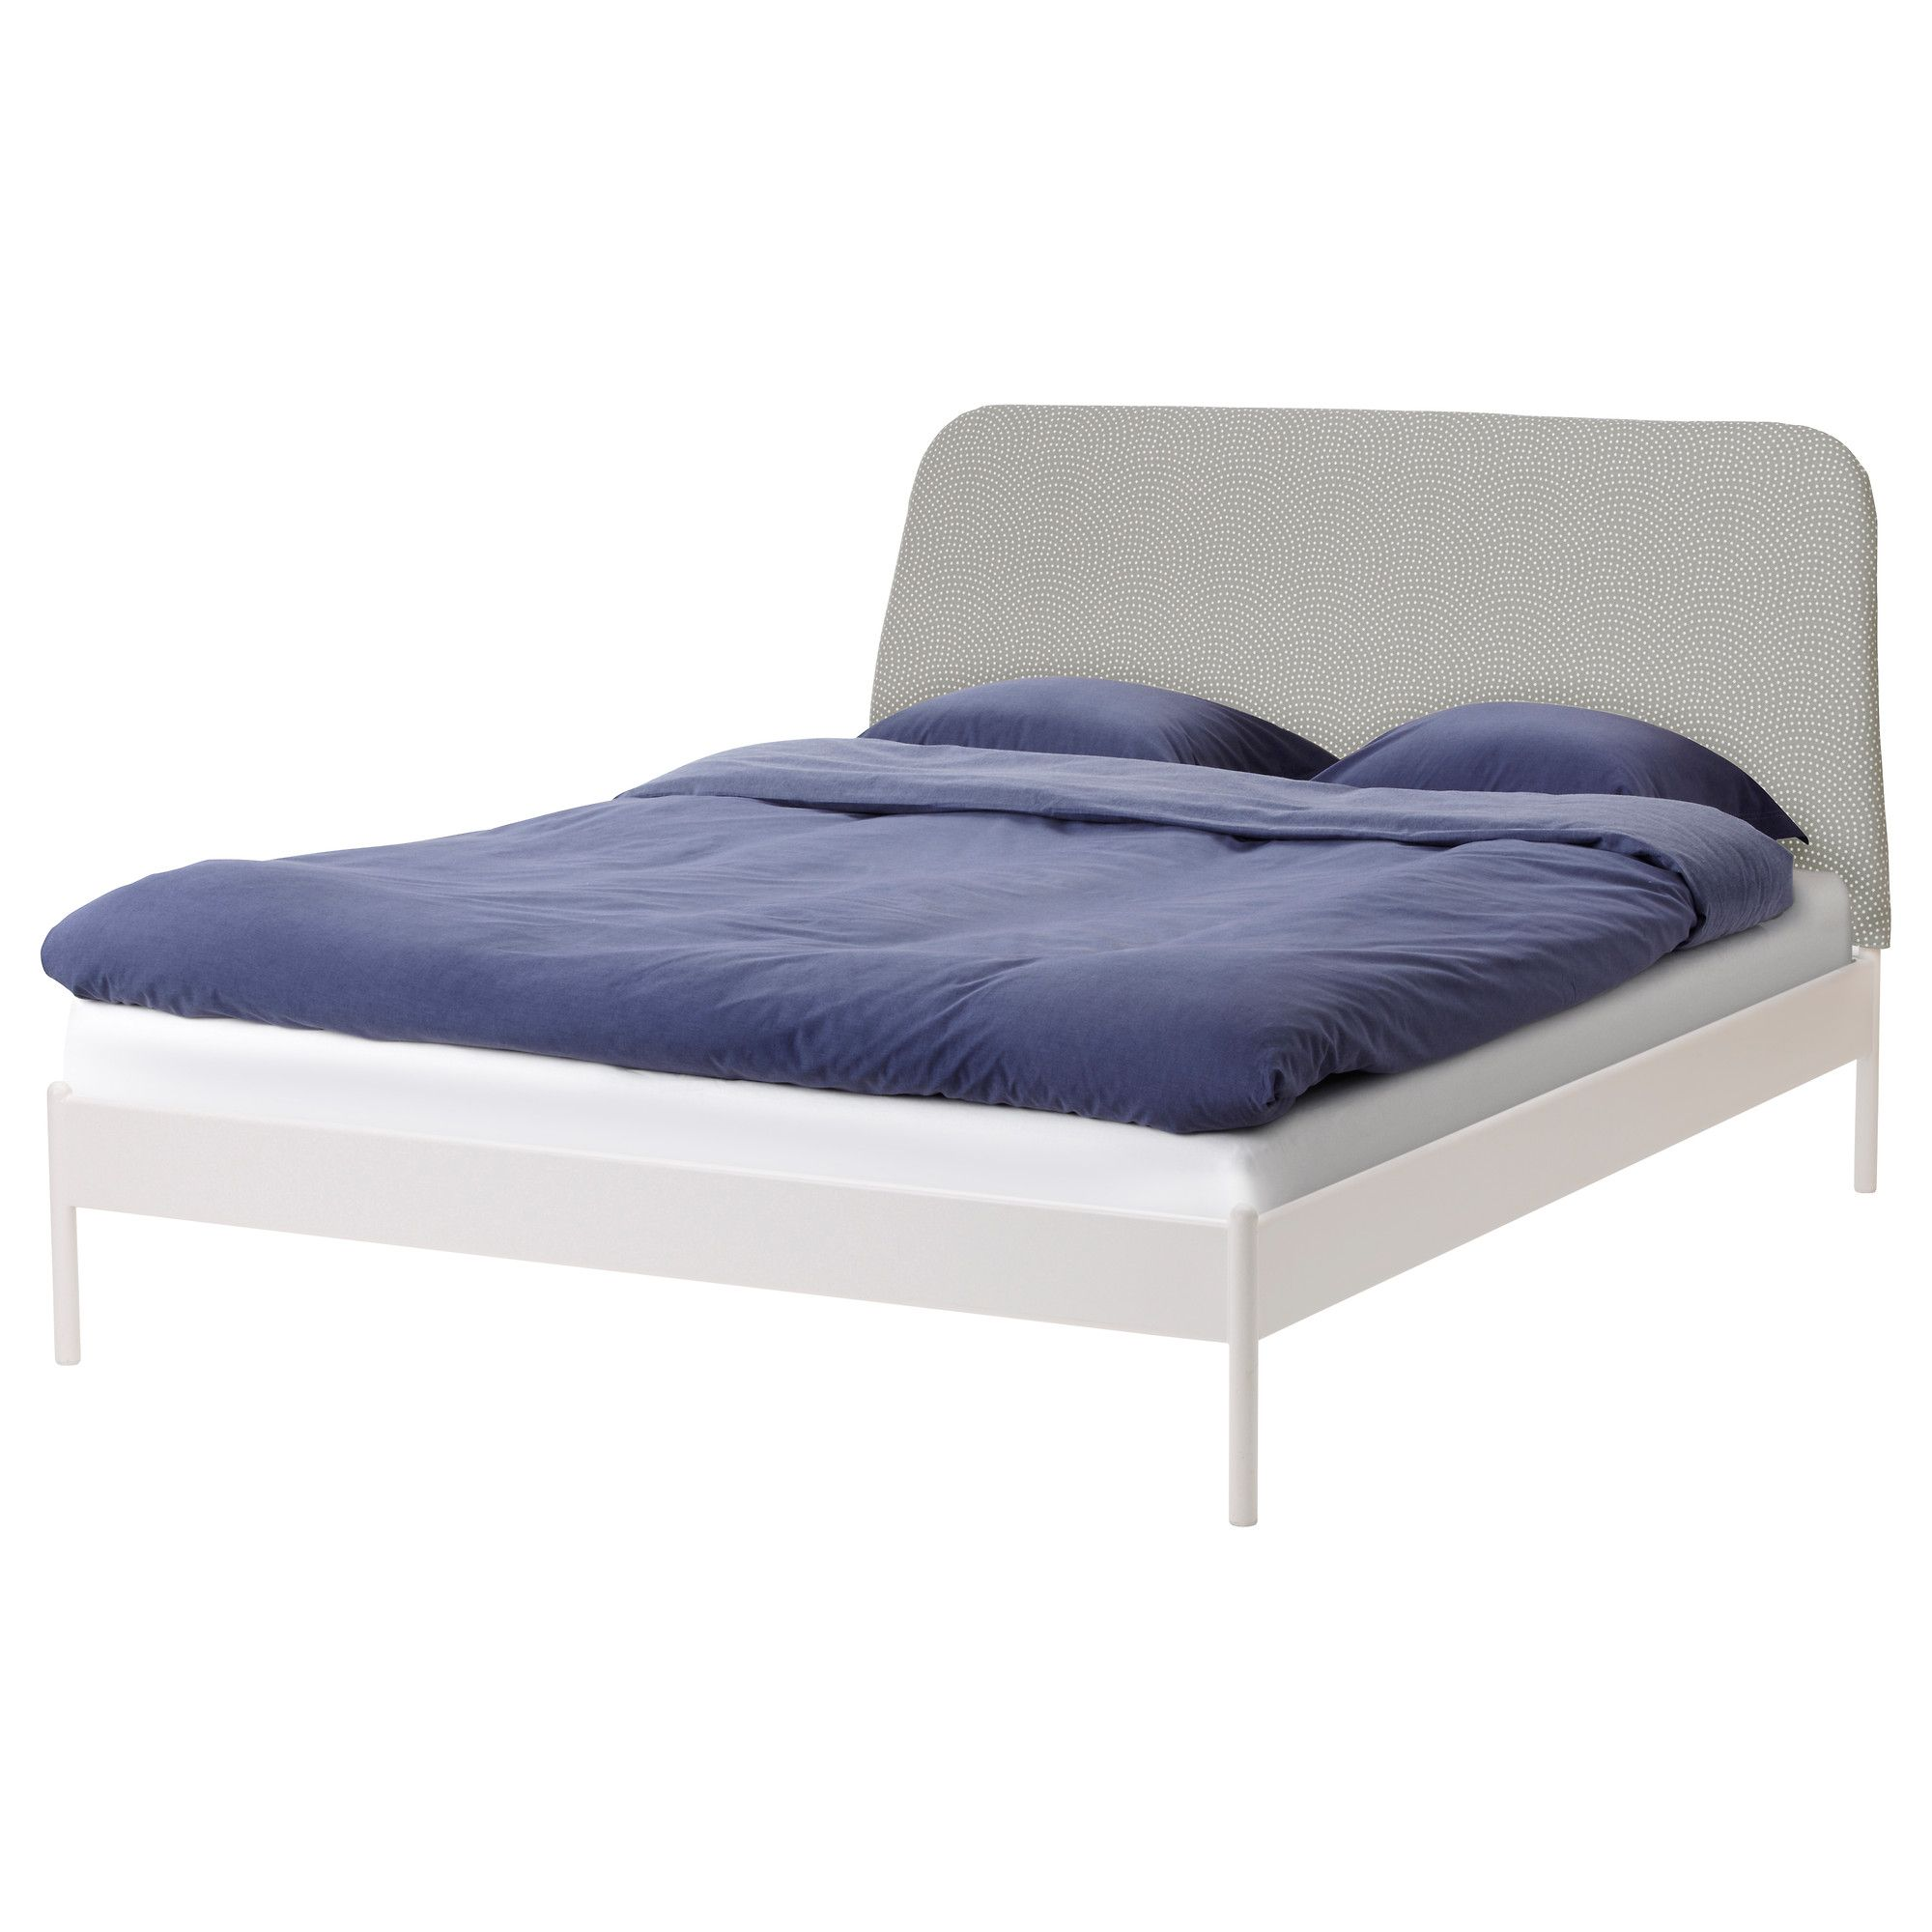 Furniture And Home Furnishings Ikea Bed Headboard Cover Bed